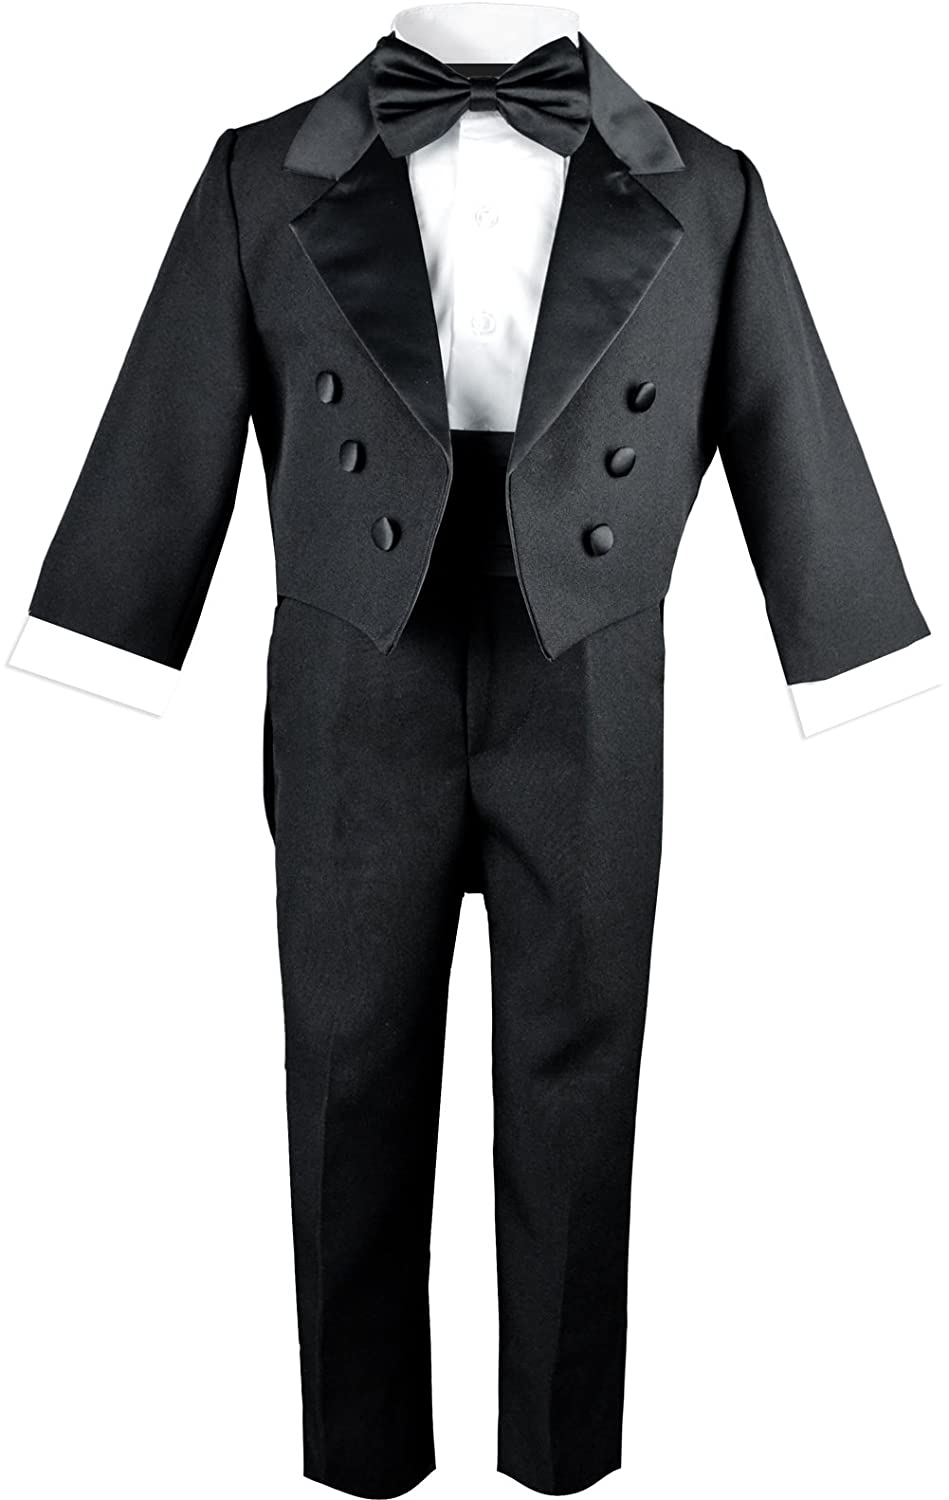 Black n Bianco Baby Boys Toddlers Black Tuxedo with a Tail